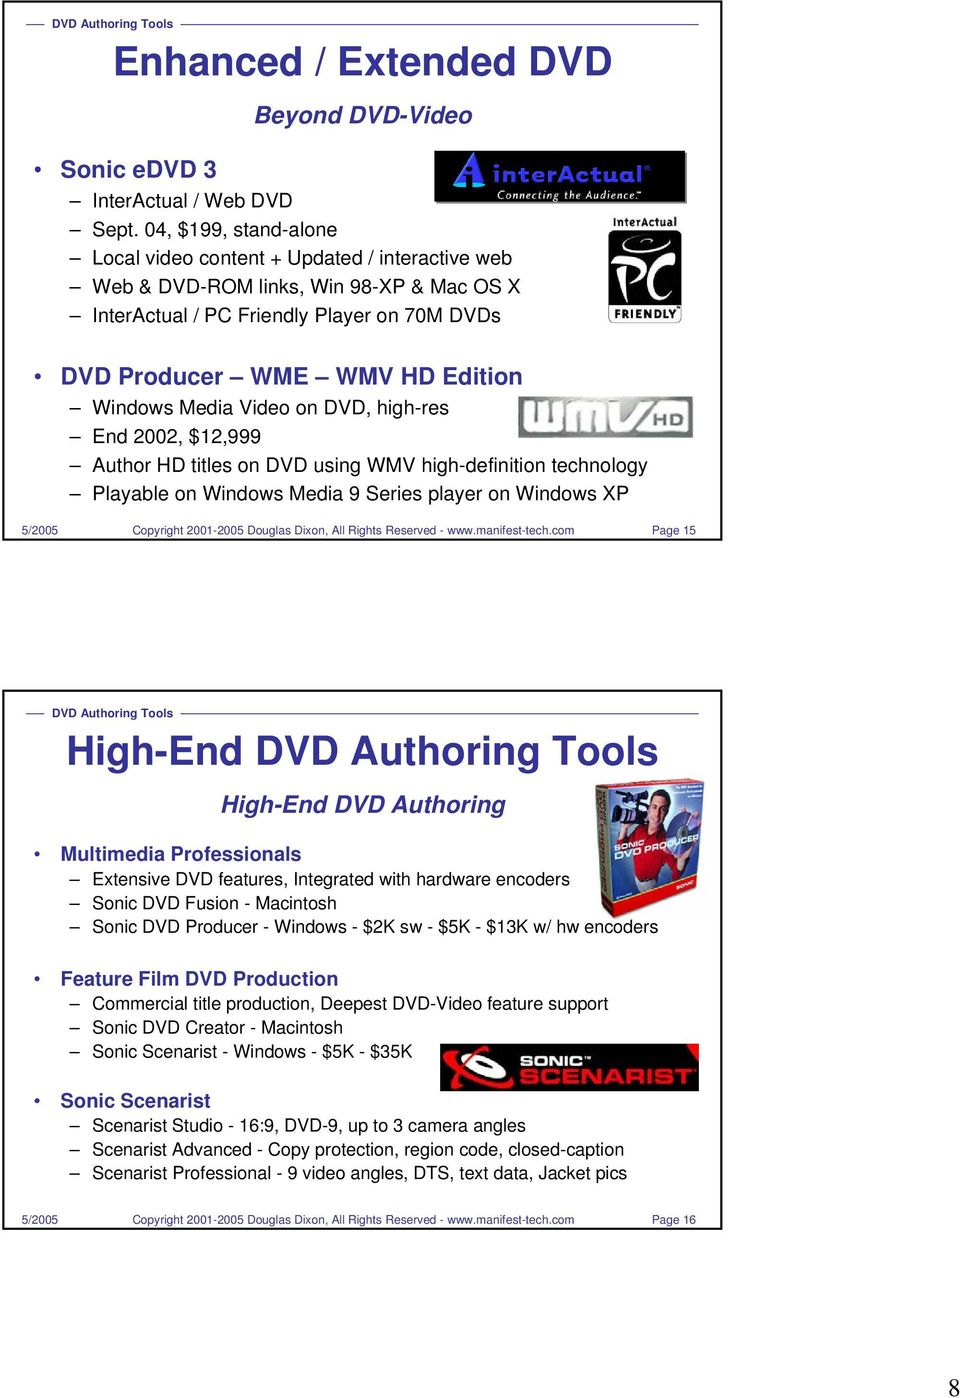 Media Video on DVD, high-res End 2002, $12,999 Author HD titles on DVD using WMV high-definition technology Playable on Windows Media 9 Series player on Windows XP Page 15 High-End High-End DVD